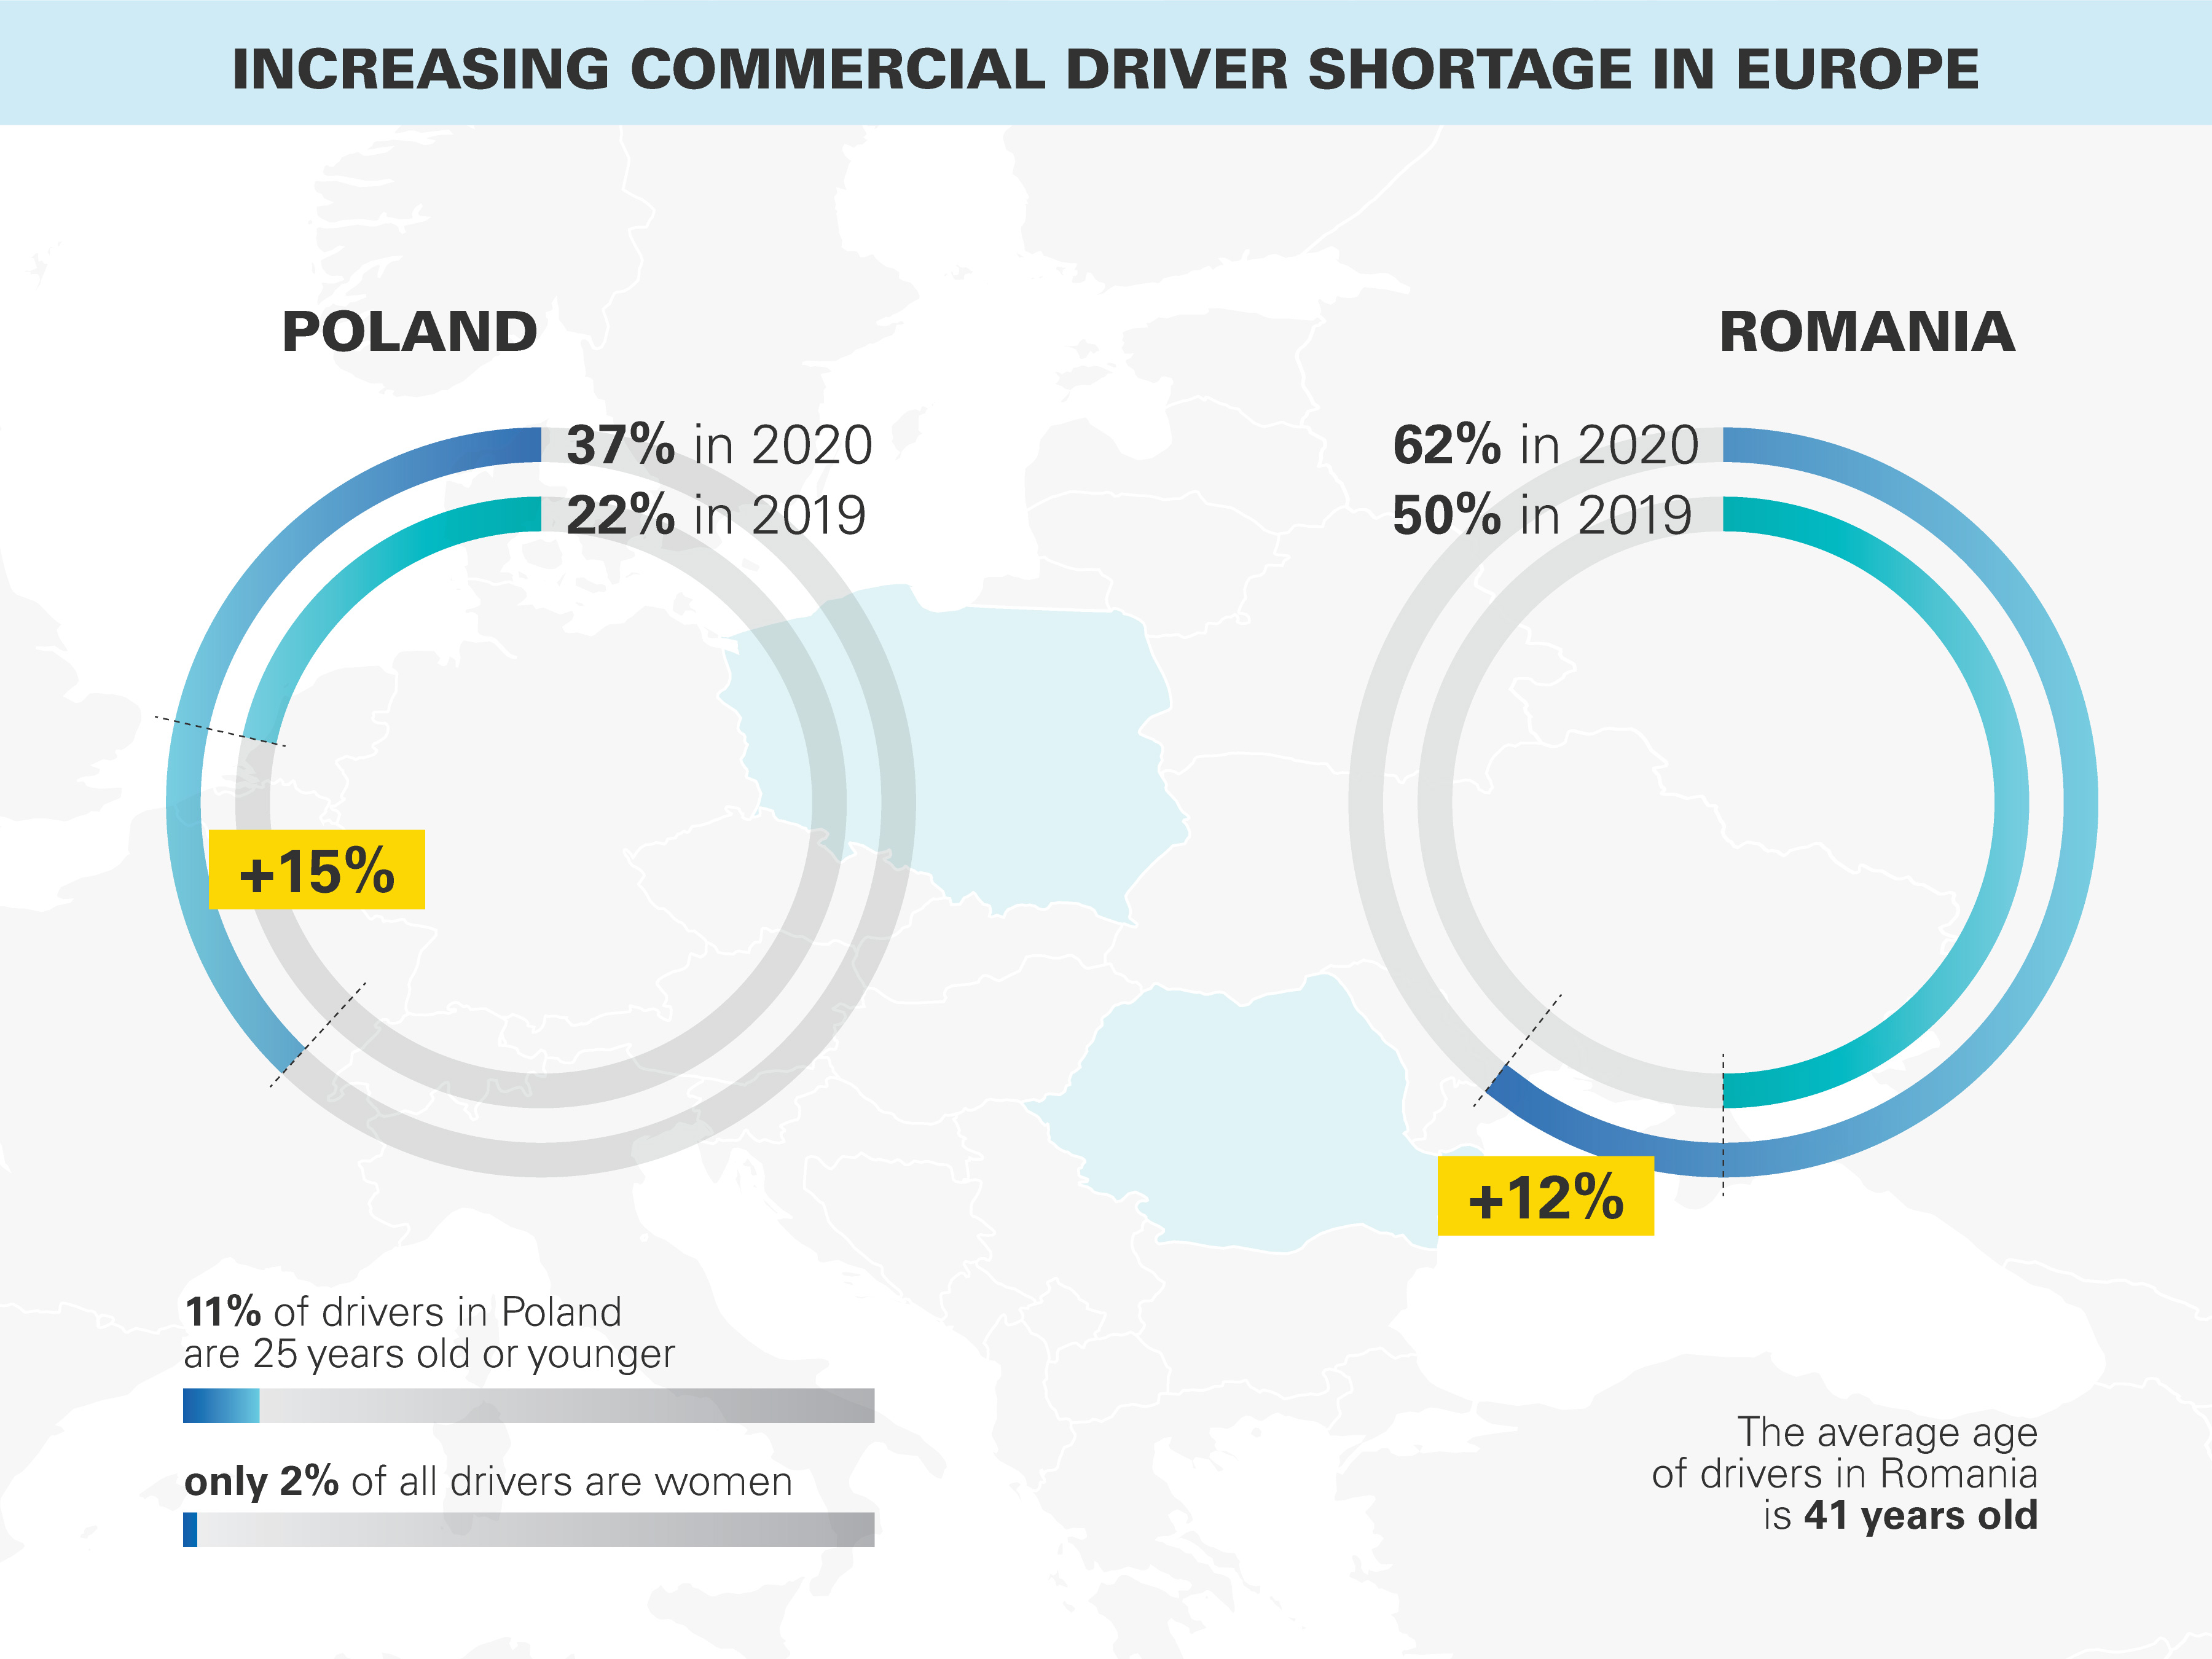 Increasing commercial driver shortage in Europe